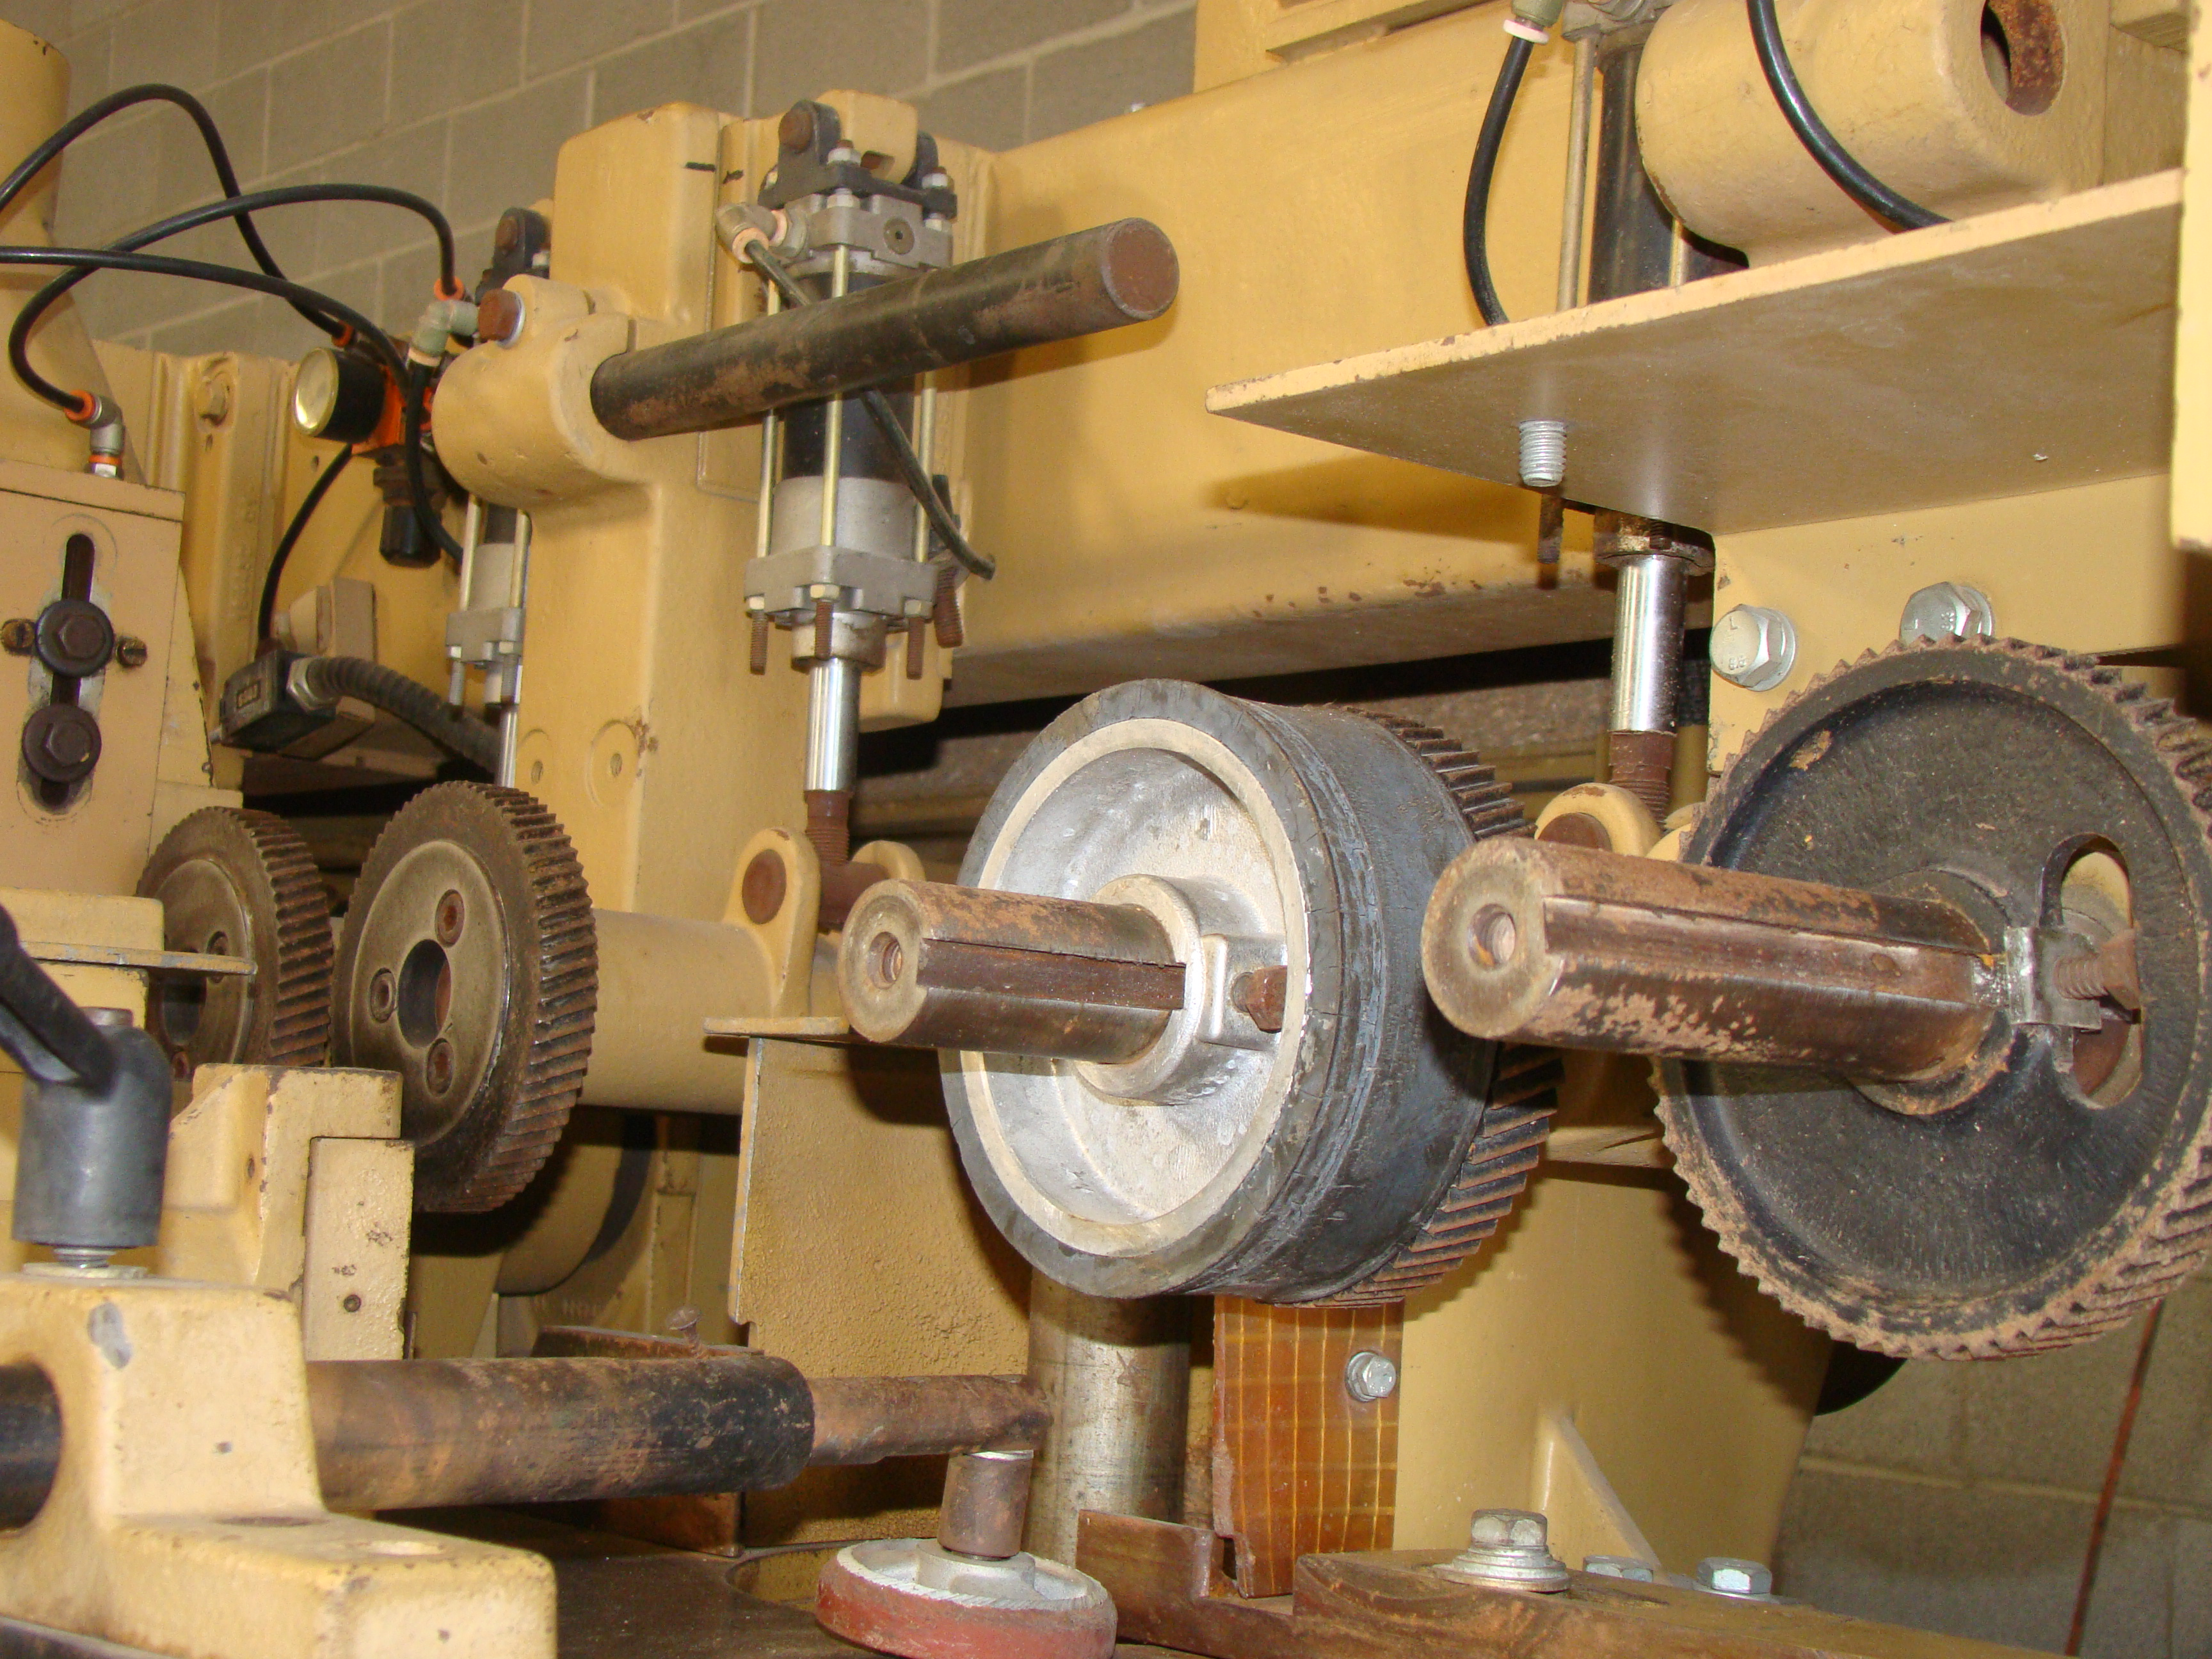 """SCMi 9"""" Wood Moulder, Model: P230 5 Head 6.6HP 220/440 Volts 3Phase - Image 8 of 14"""